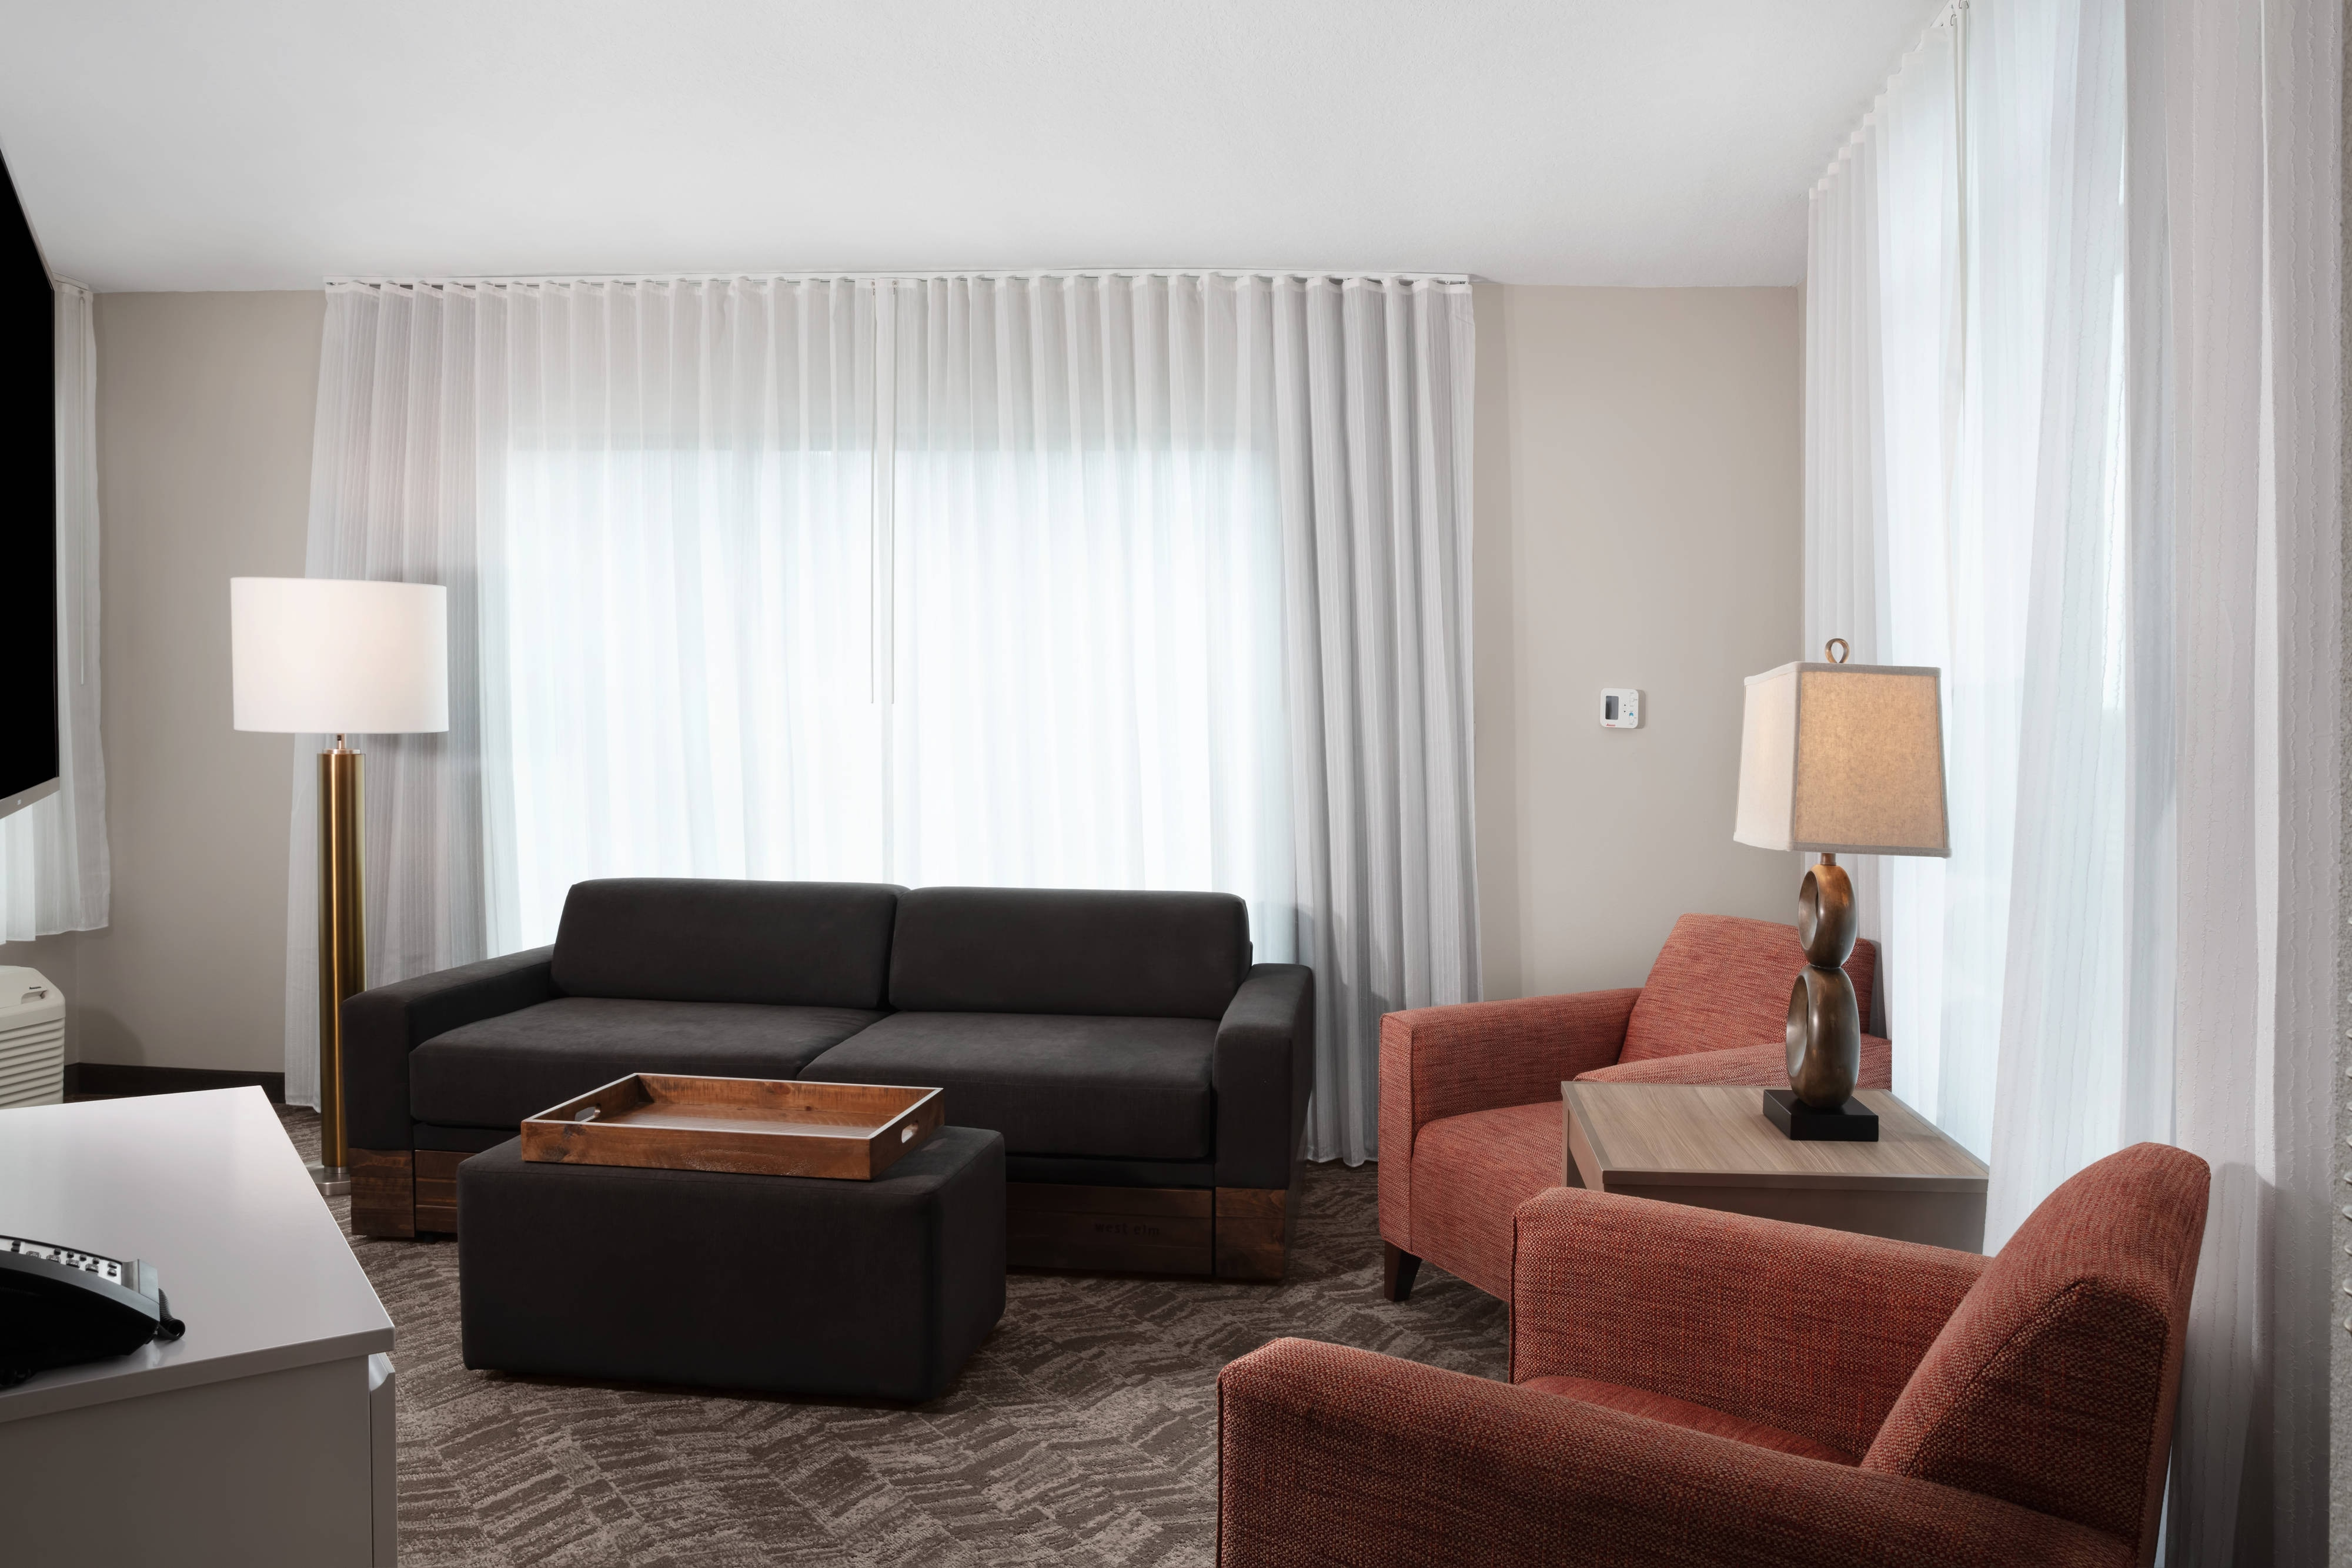 Guest Room - Seating Area